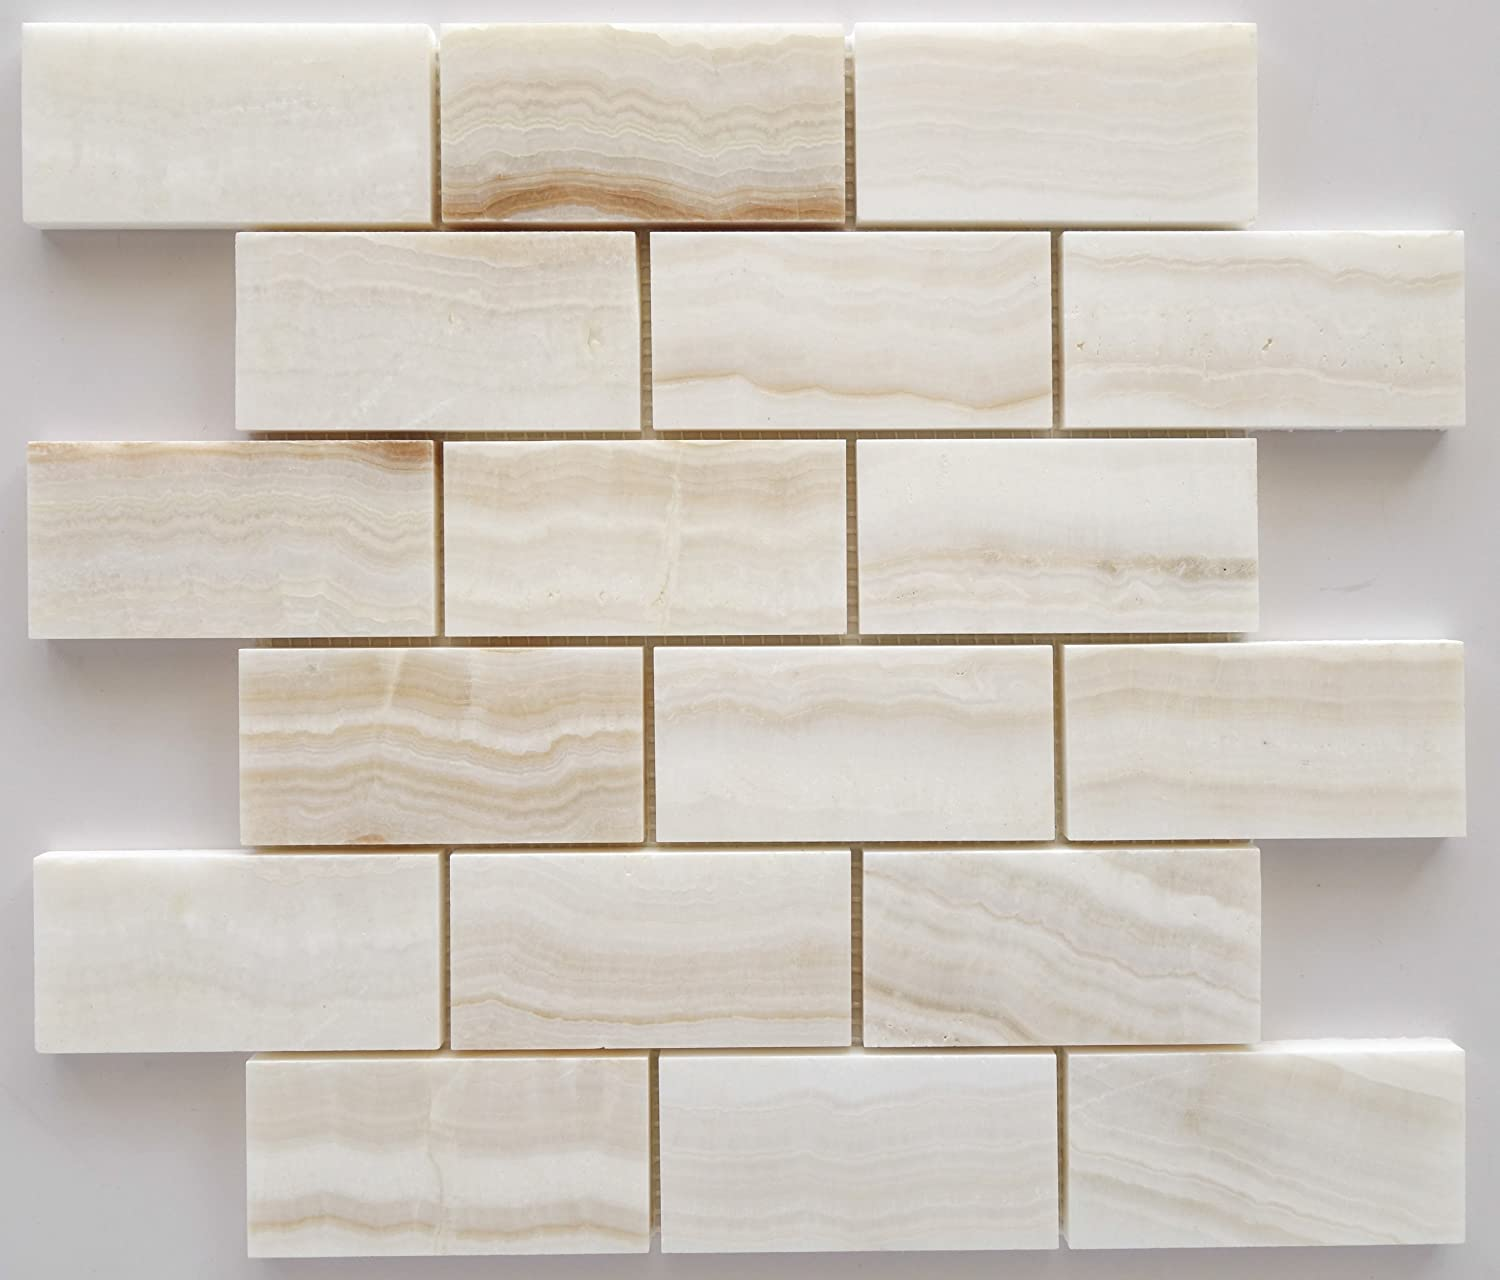 4x4 Sample of 2x4 White Onyx Subway Polished Tiles on 12x12 sheet ...